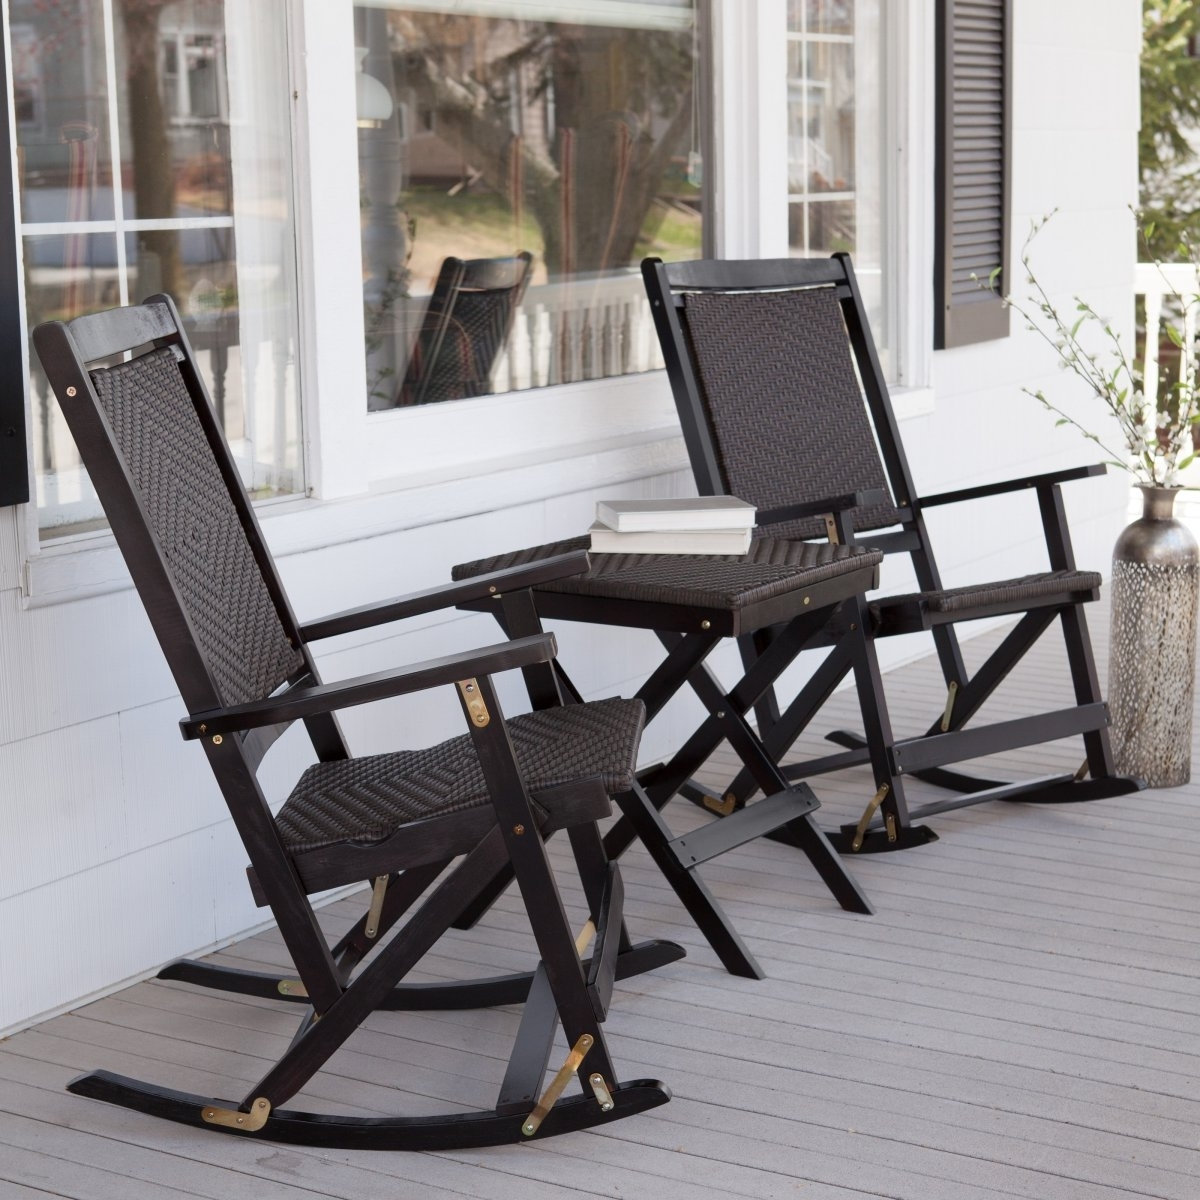 Outdoor Fascinating Rocking Chairs For Front Porch Outdoors White Throughout Trendy Outdoor Patio Rocking Chairs (View 12 of 20)